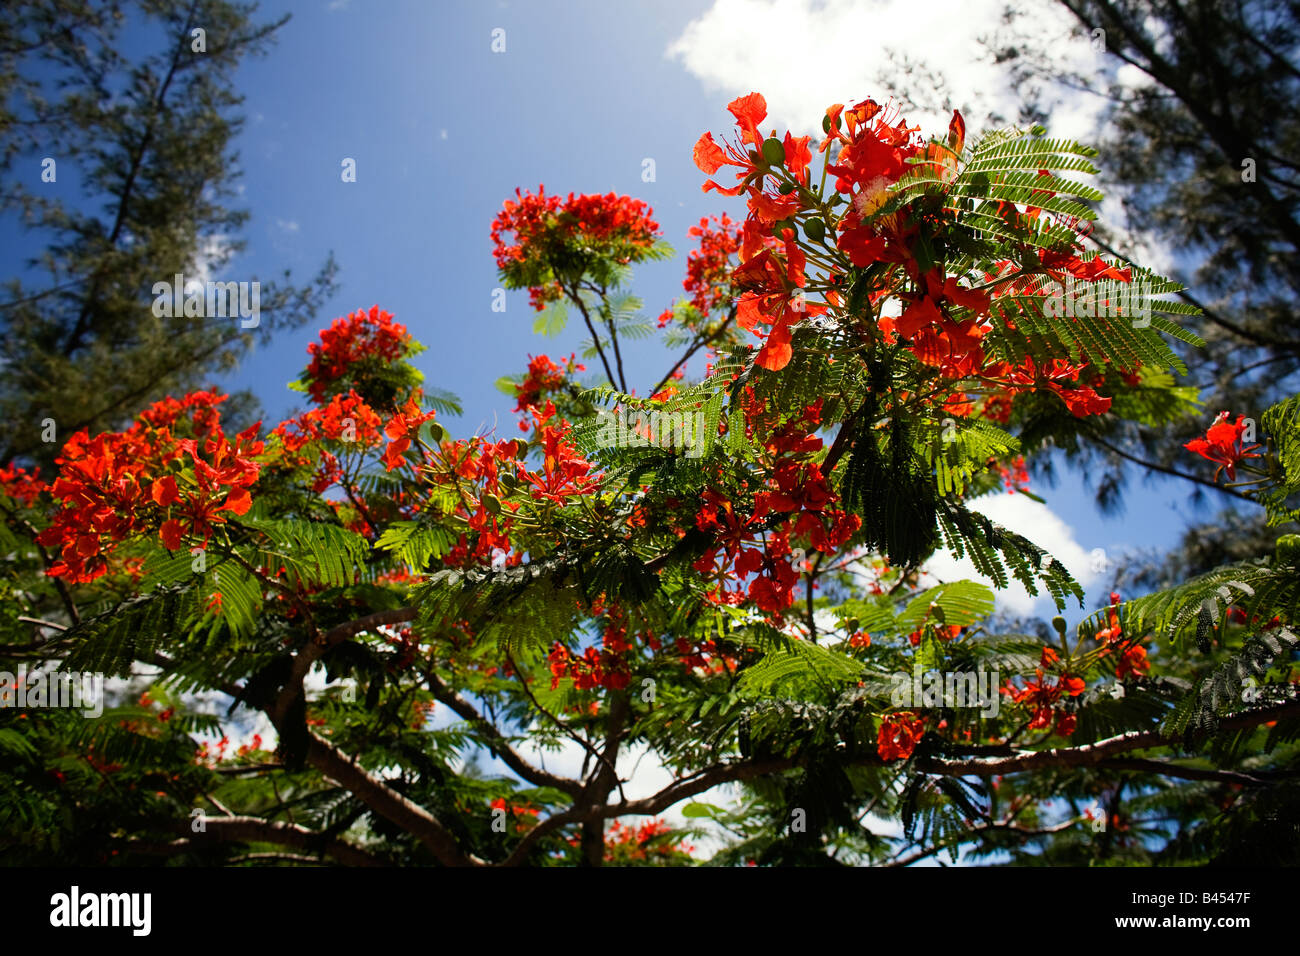 Blossom from the Flamboyant tree against a blue sky in Antigua - Stock Image